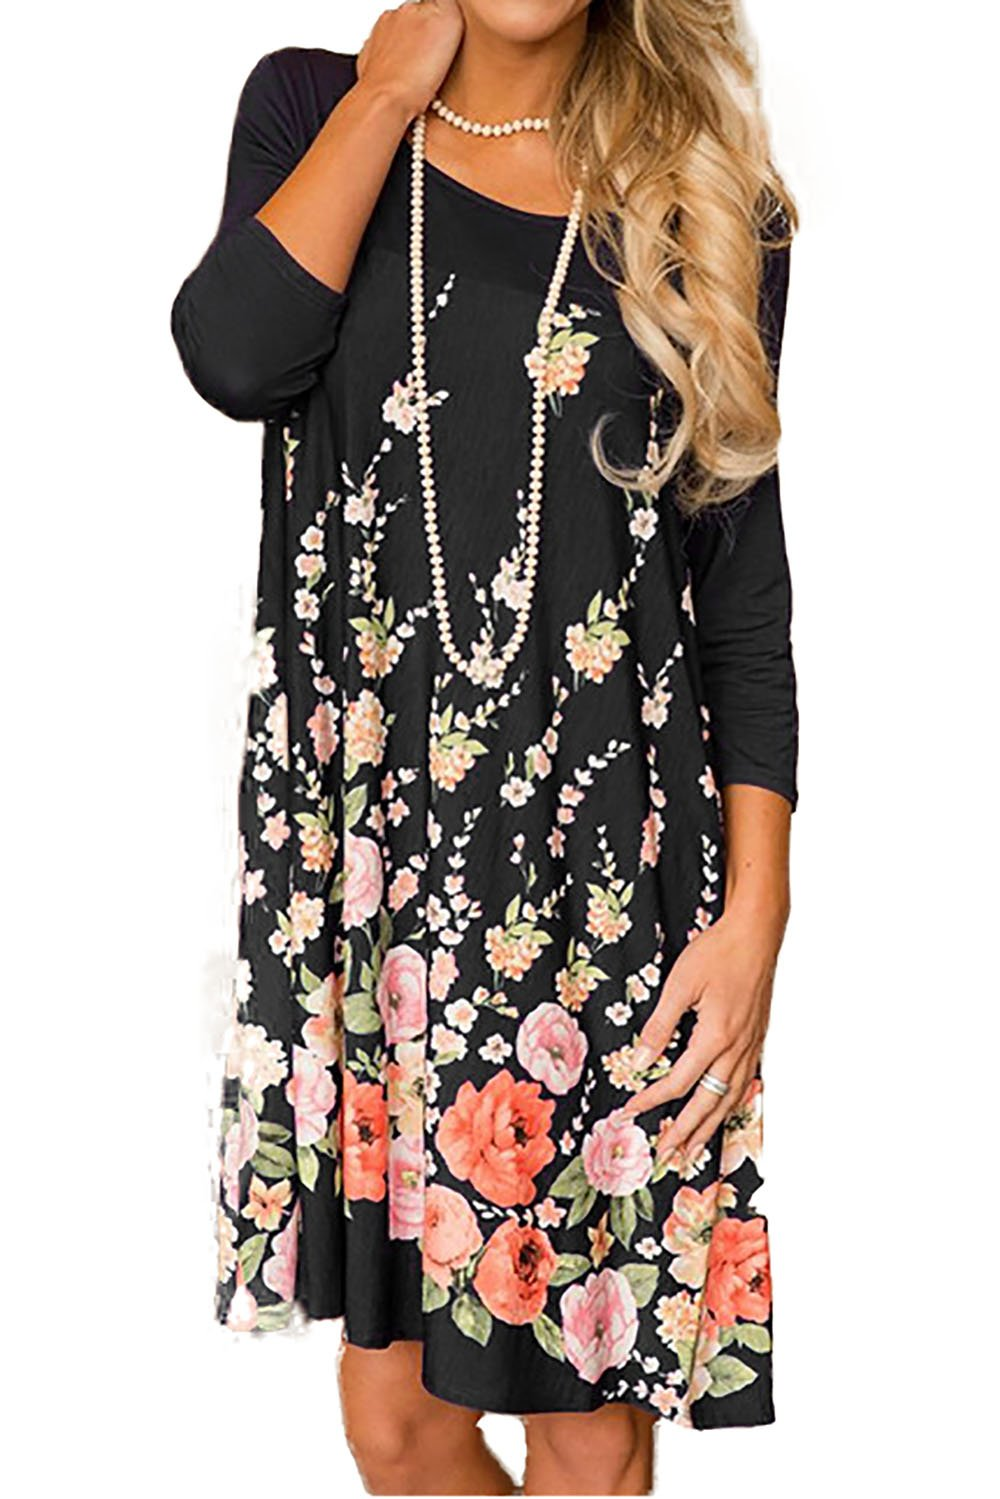 Minipeach Women's Floral Print Crew Neck Long Sleeve T-Shirt Dresses With Pockets